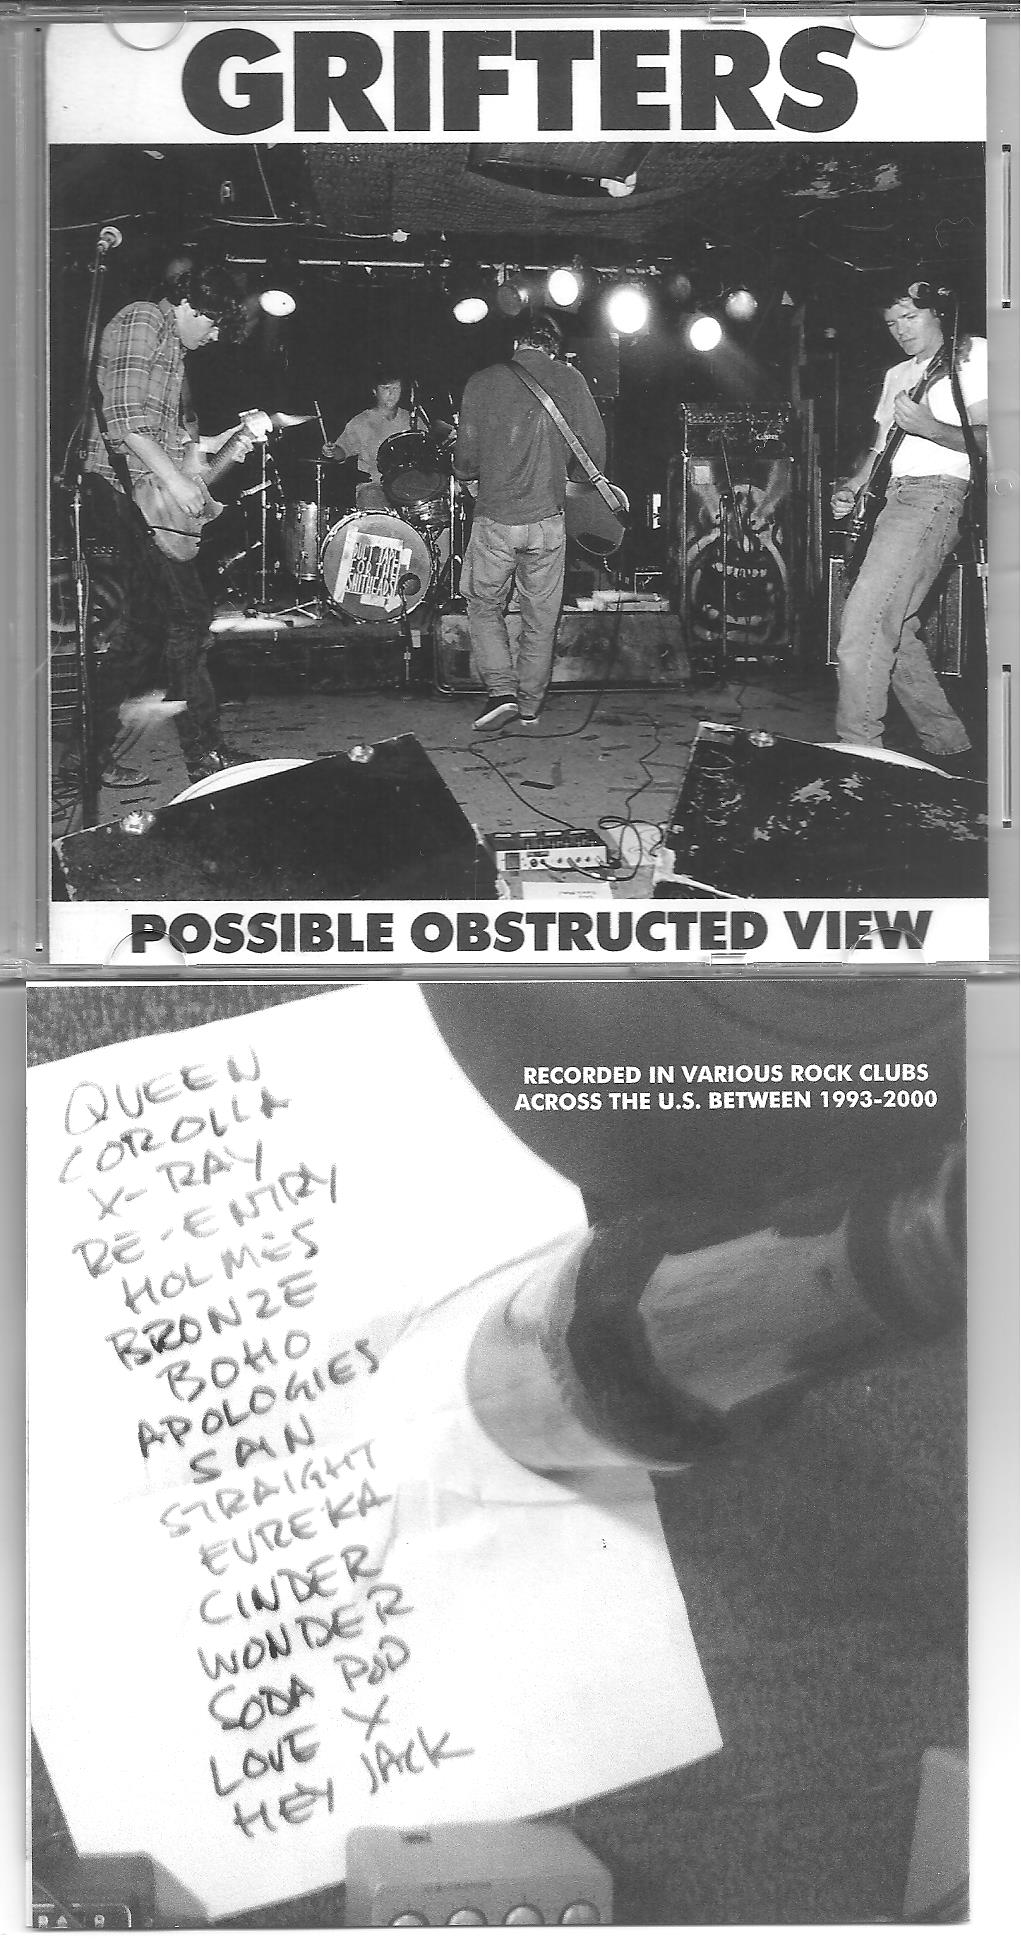 Grifters, The - Possible Obstructed View cdr (No Label)